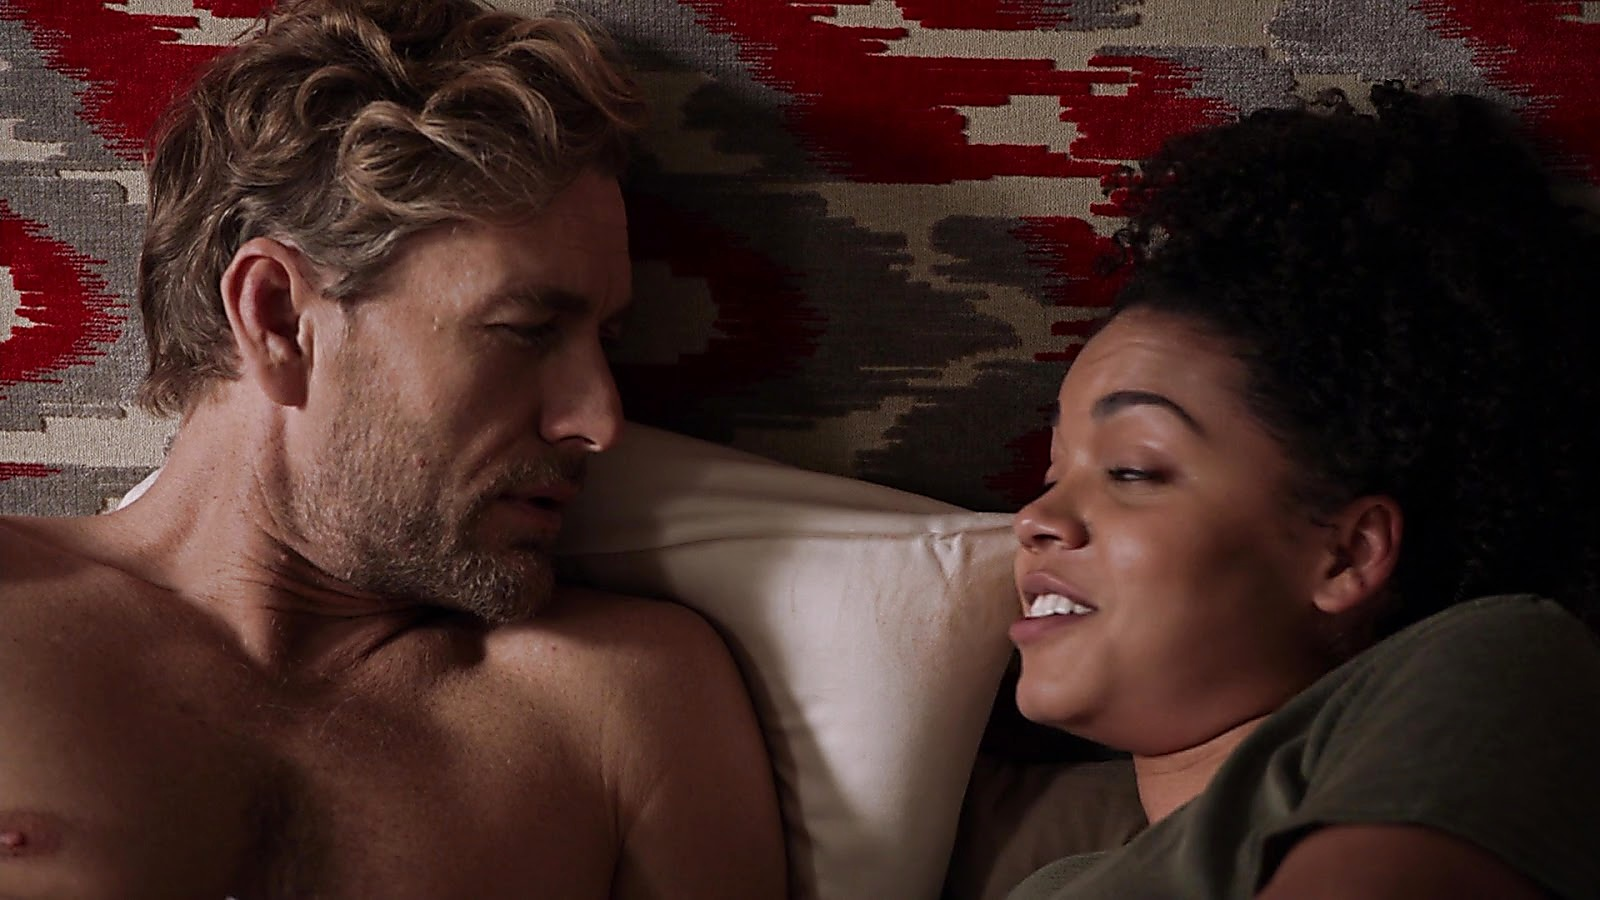 Brett Tucker Station 19 S02E13 2019 04 12 2